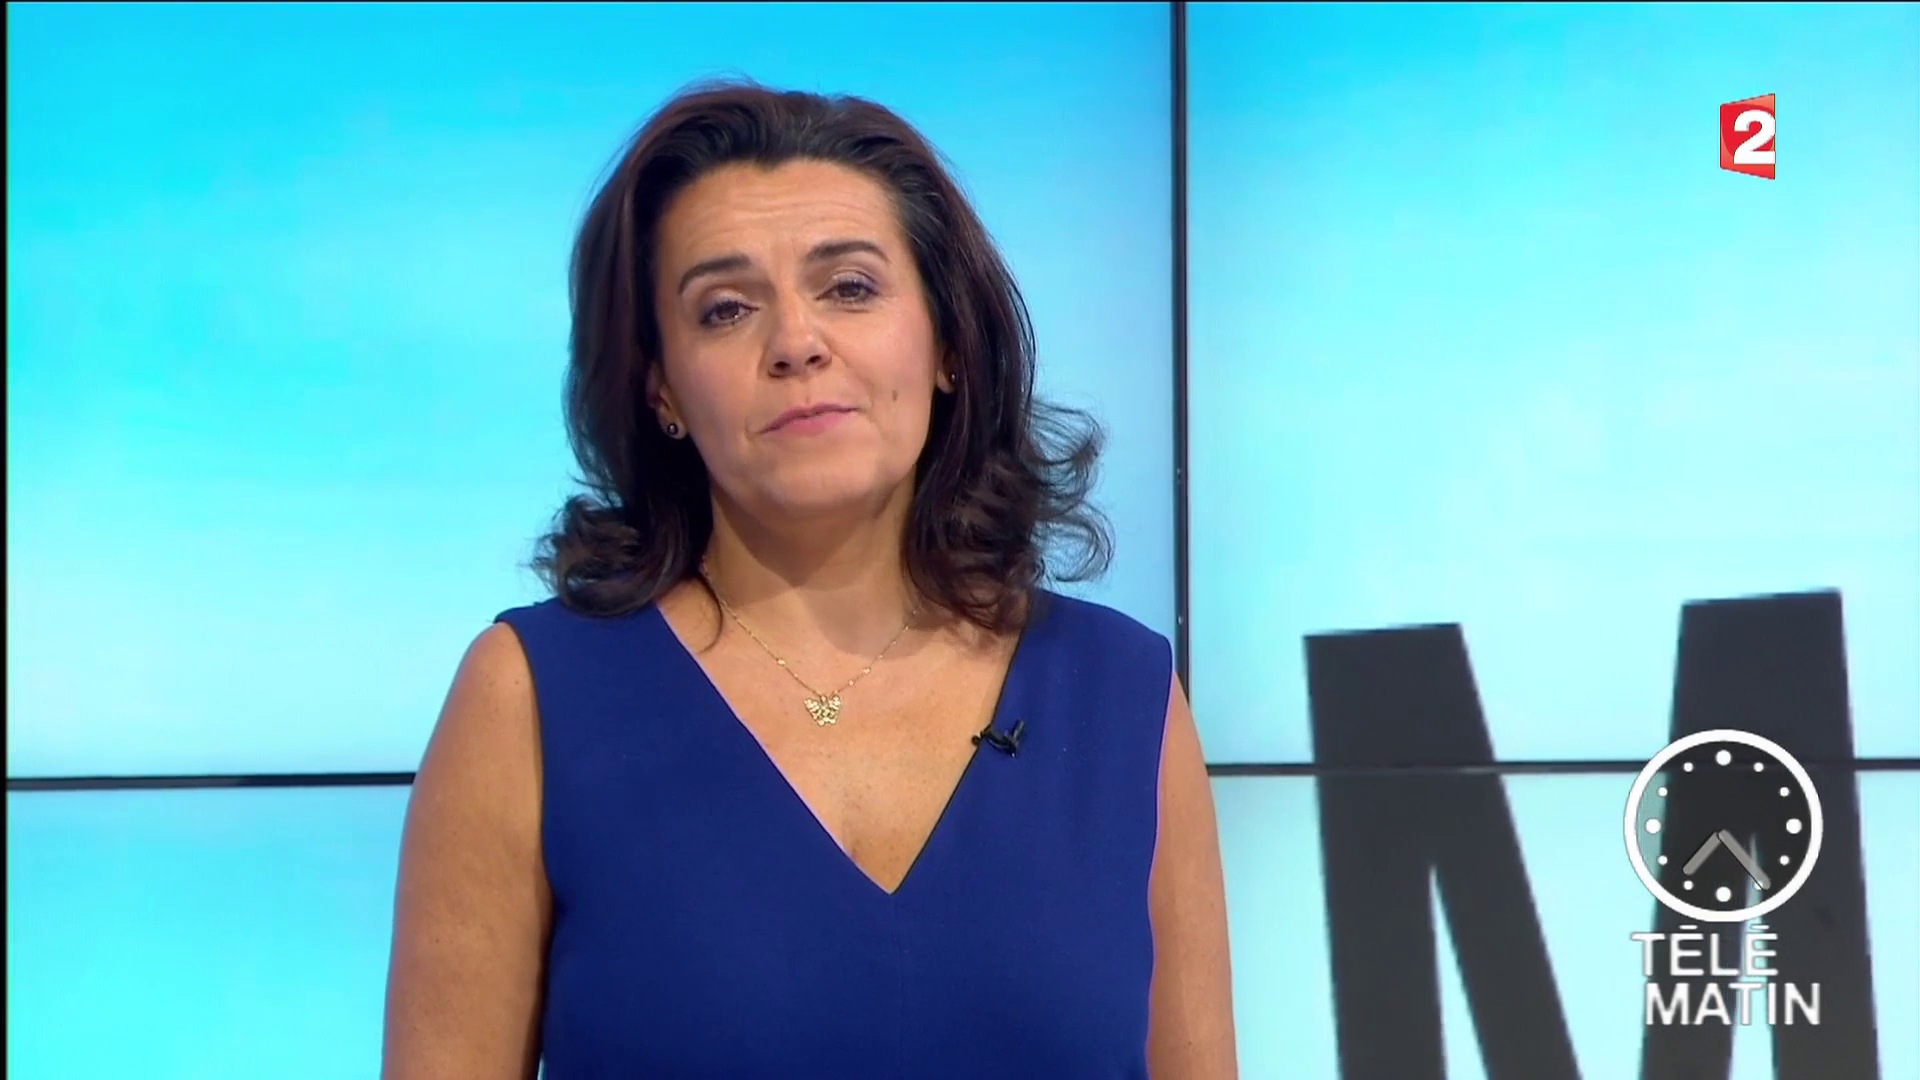 patriciacharbonnier04.2015_08_06_meteotelematinFRANCE2